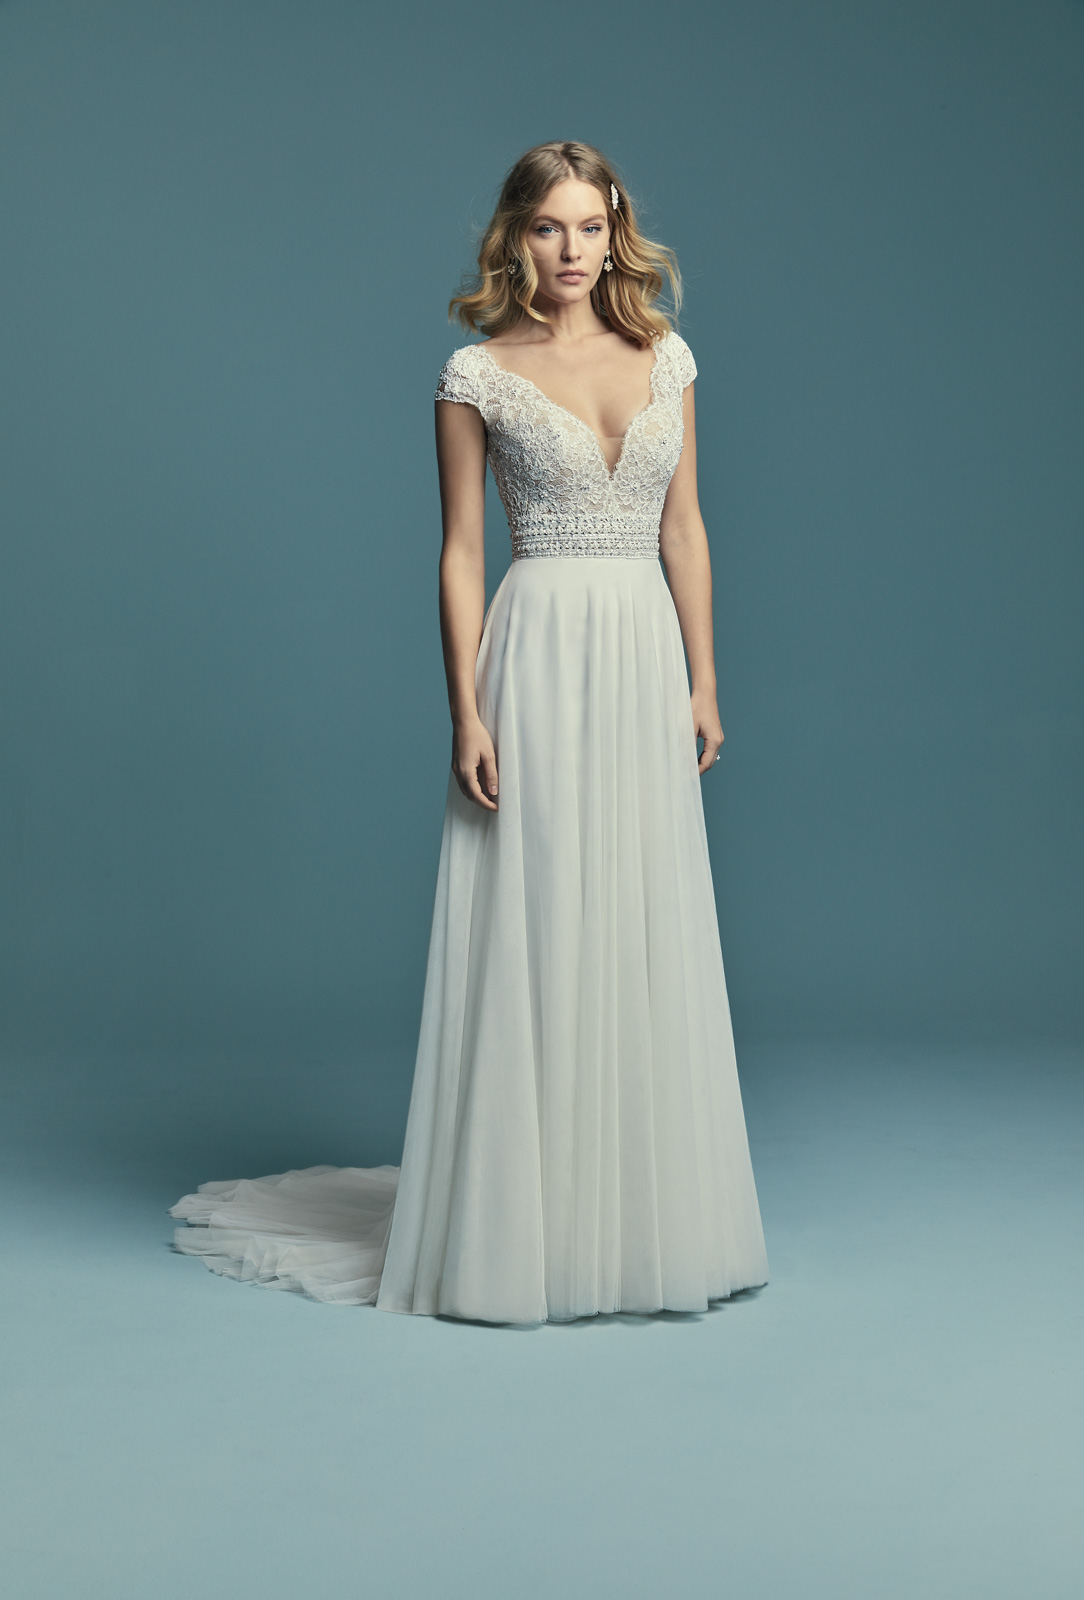 Maggie-Sottero-Monarch-8MS751-Main_72DPI